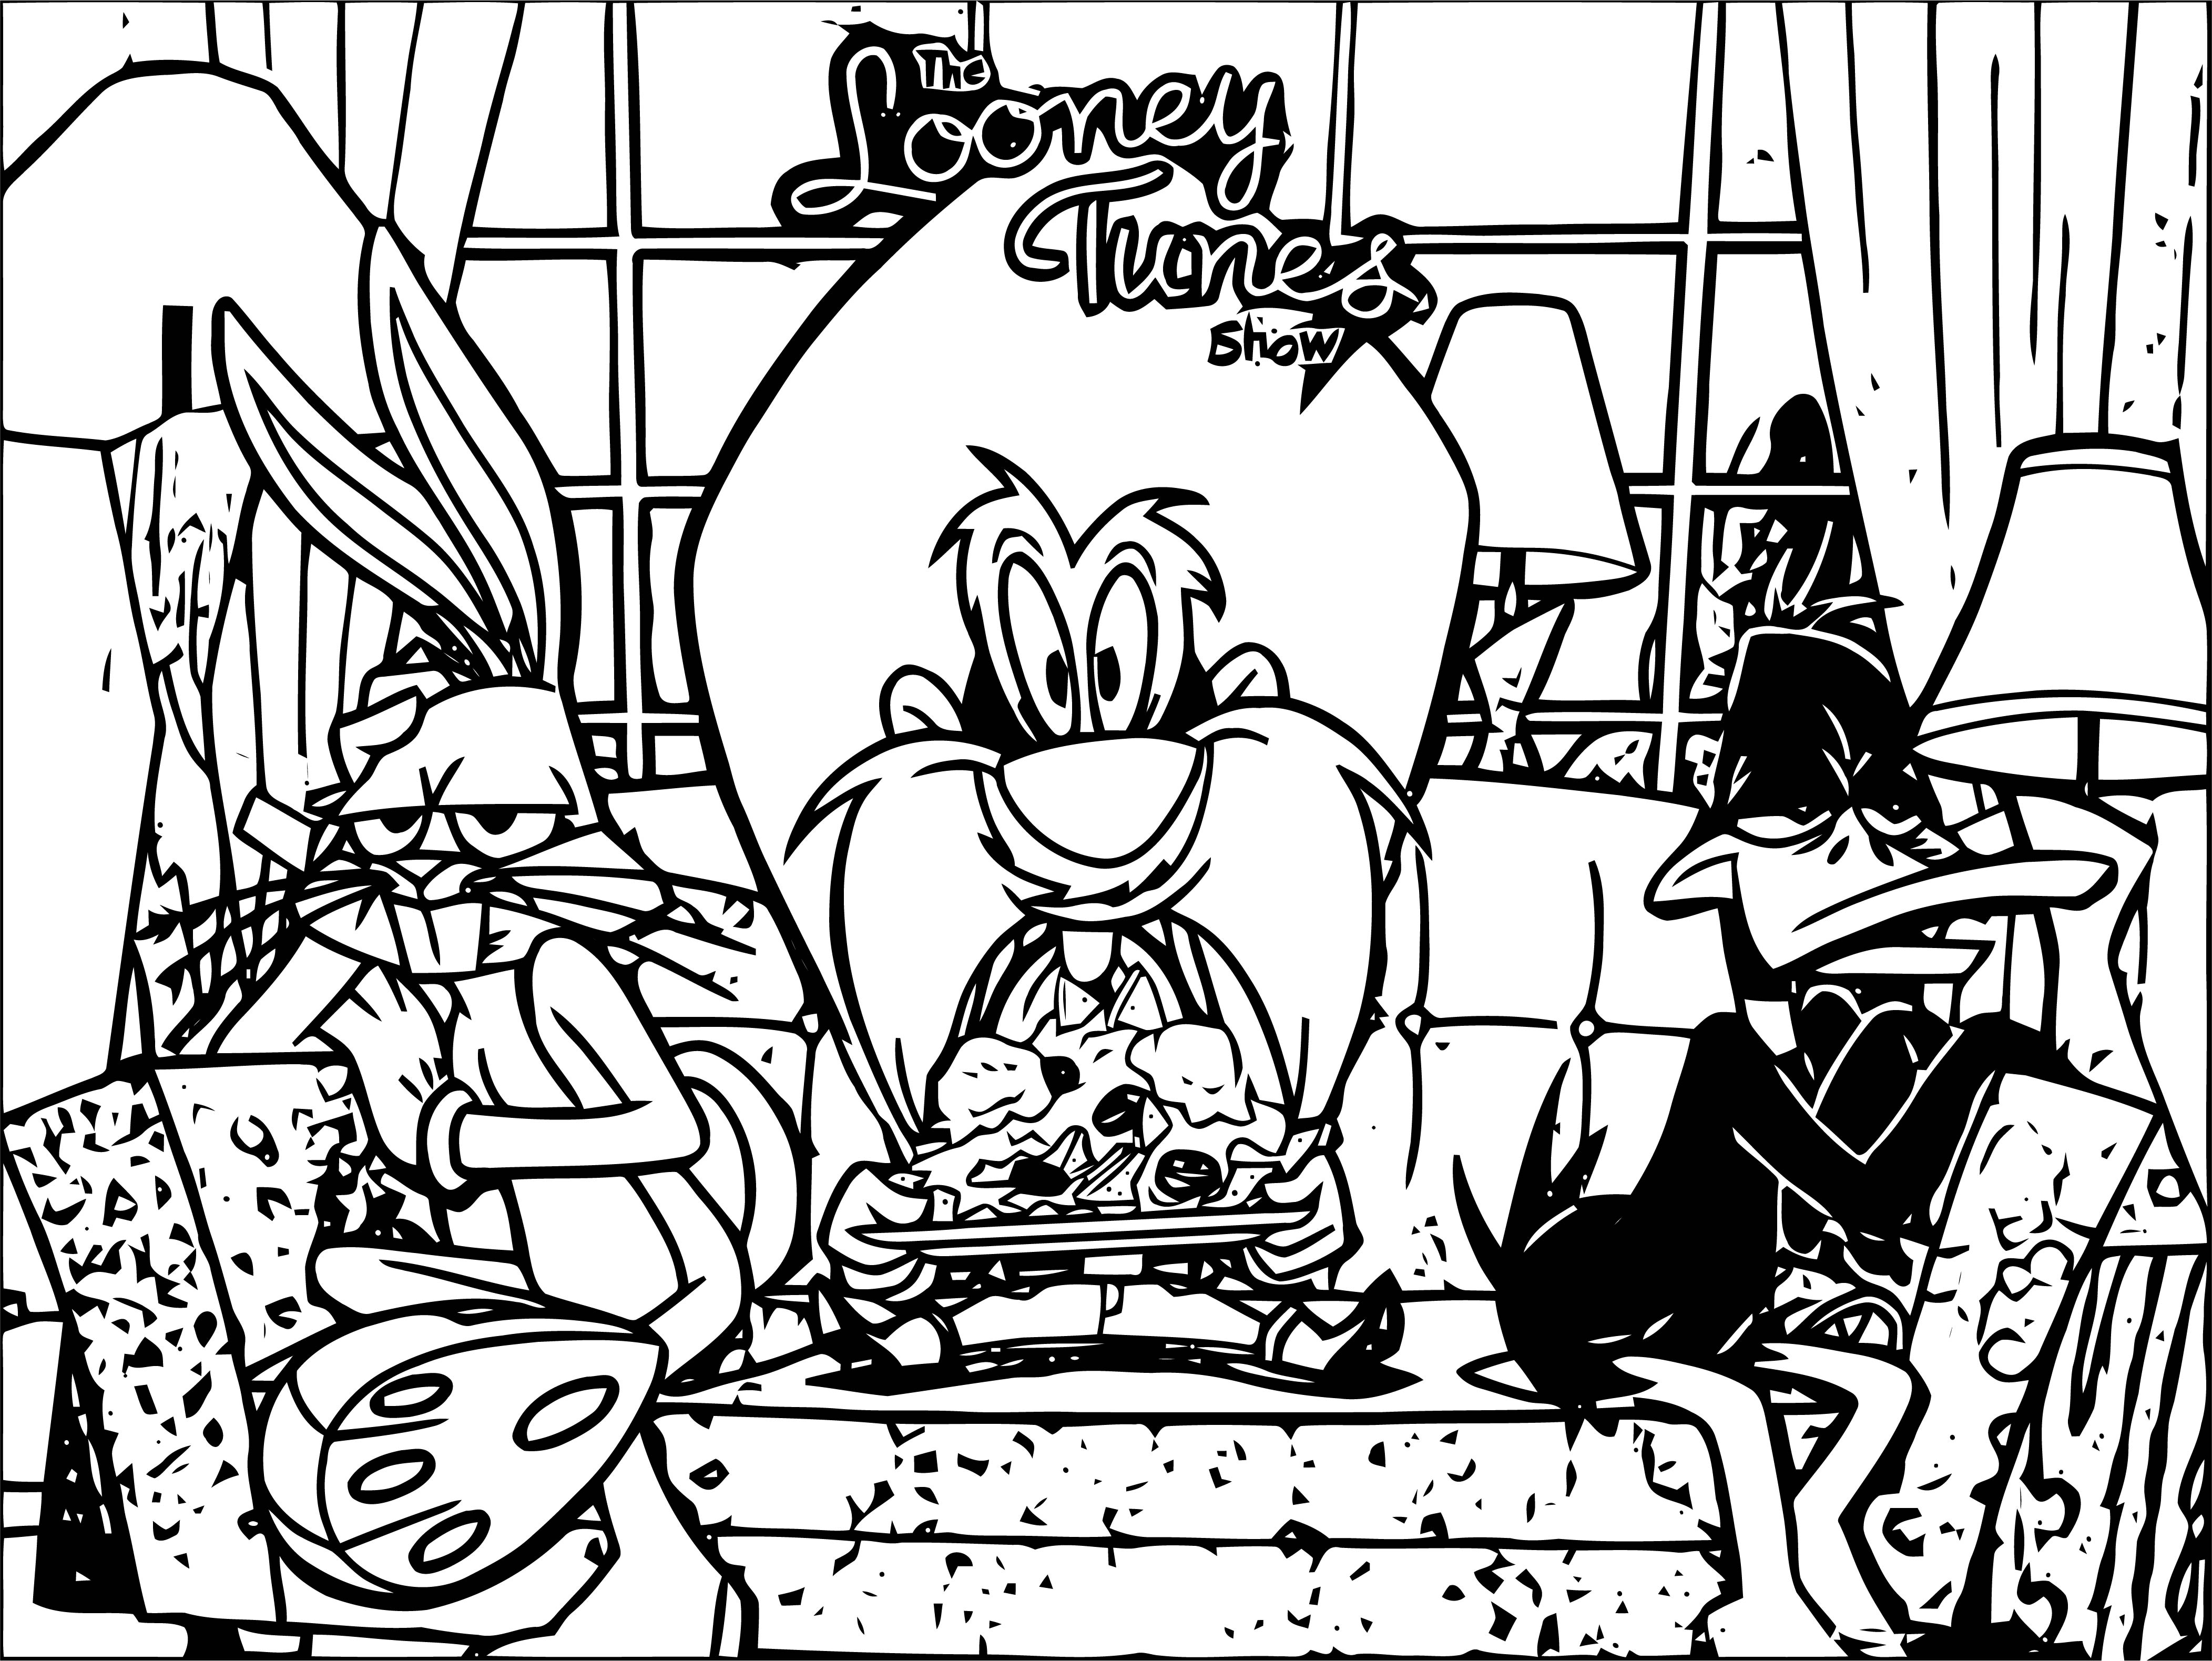 Sam1 Looney Tunes The Looney Tunes Show Coloring Page